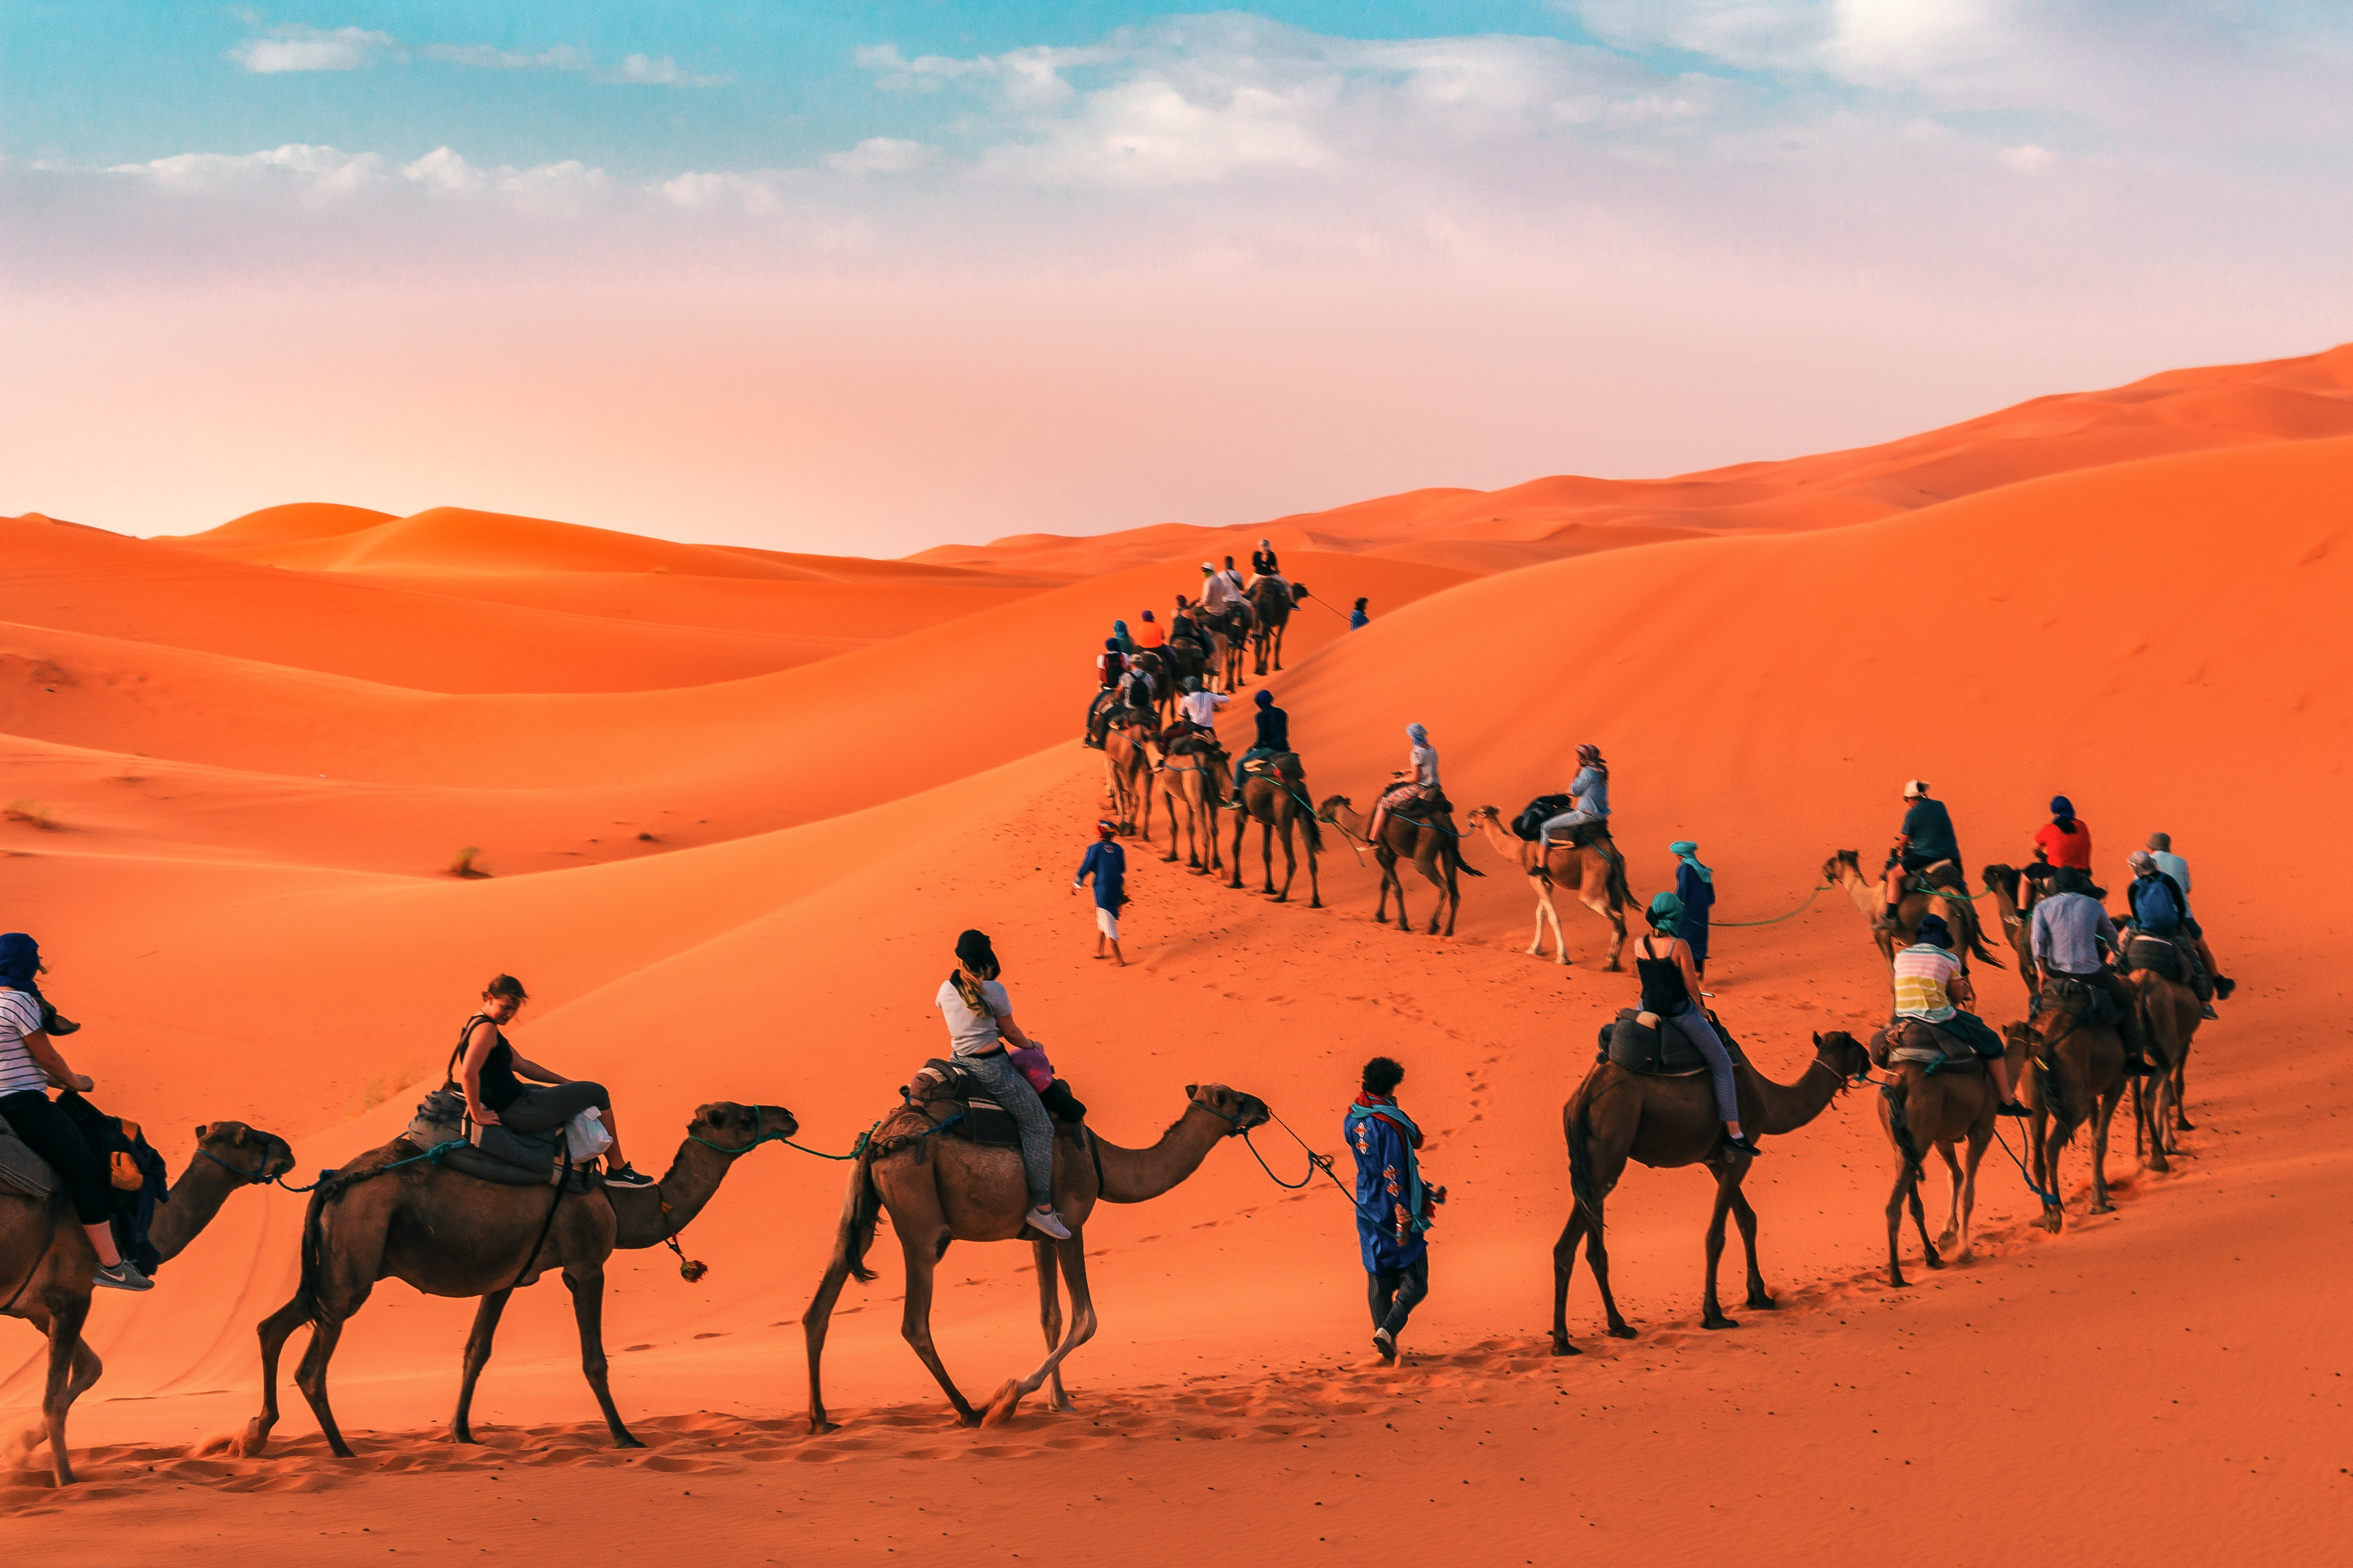 A camel train winding its way through the orange dunes of the Sahara Desert under a light blue sky with white clouds.